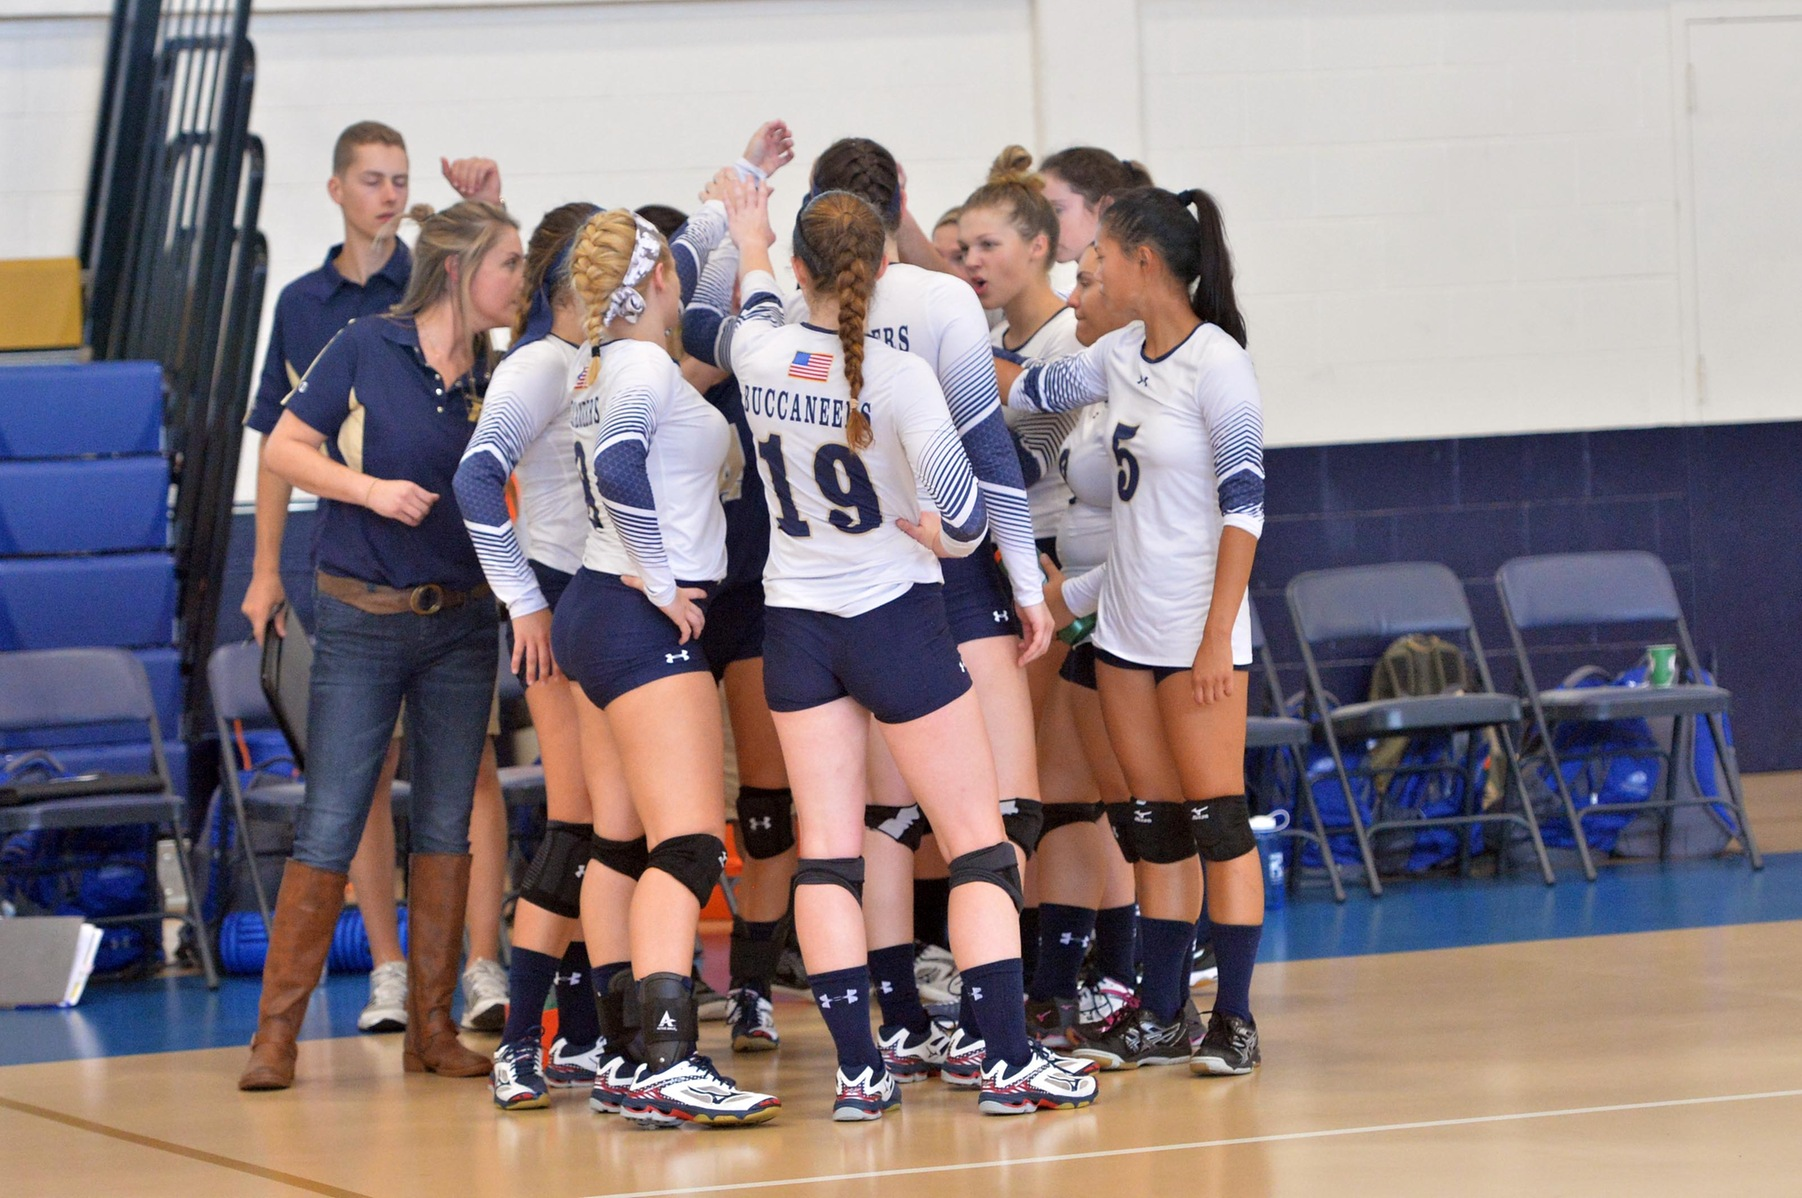 Buccaneer Take First Set; fall to Fisher in Four